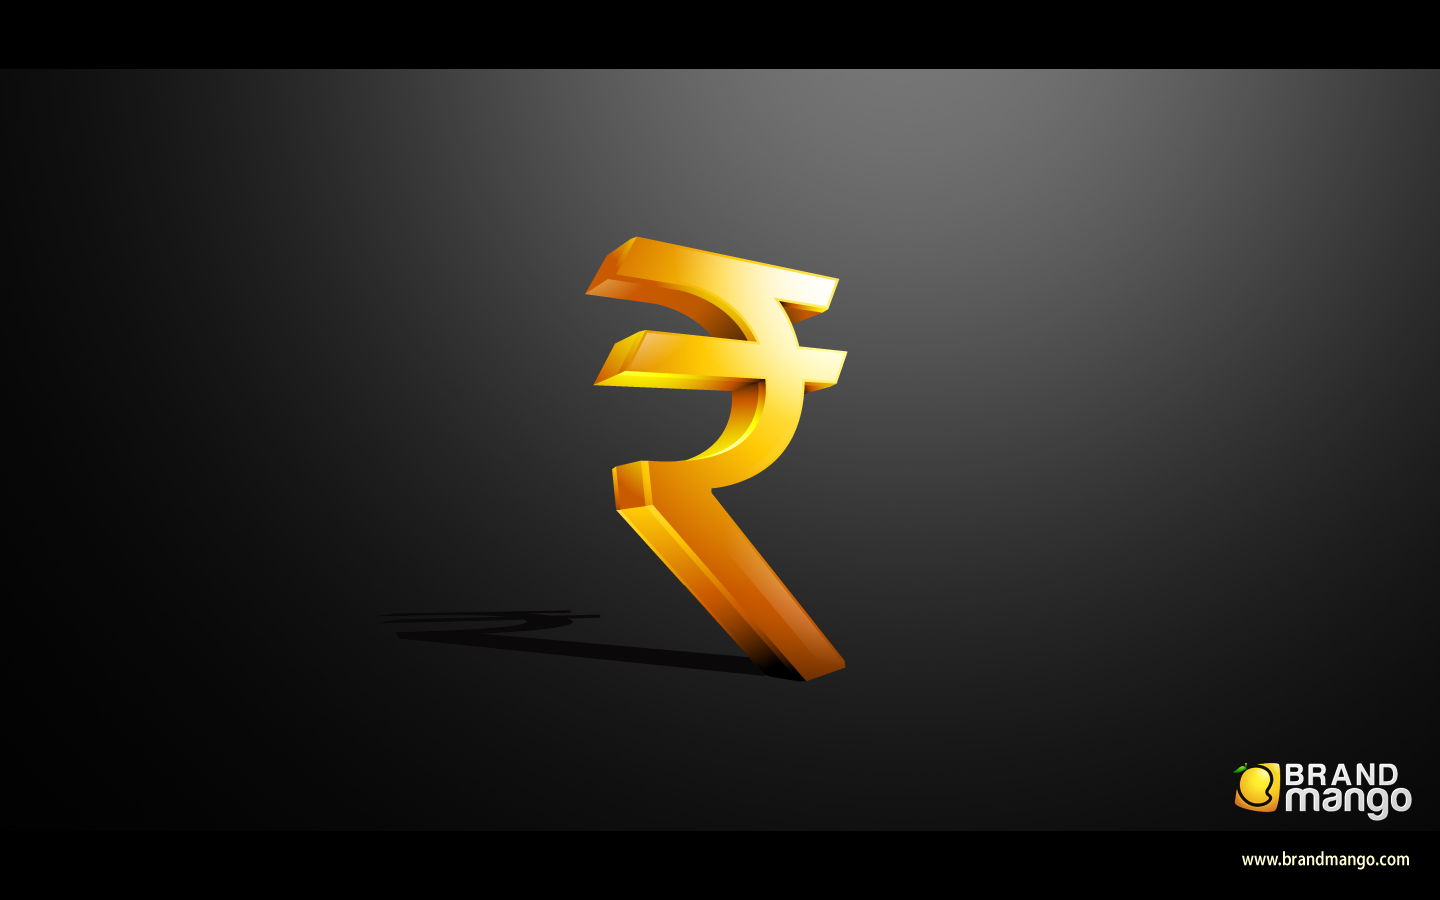 Dharbhar Indian Rupee Symbol Wallpapers Epic Car Wallpapers